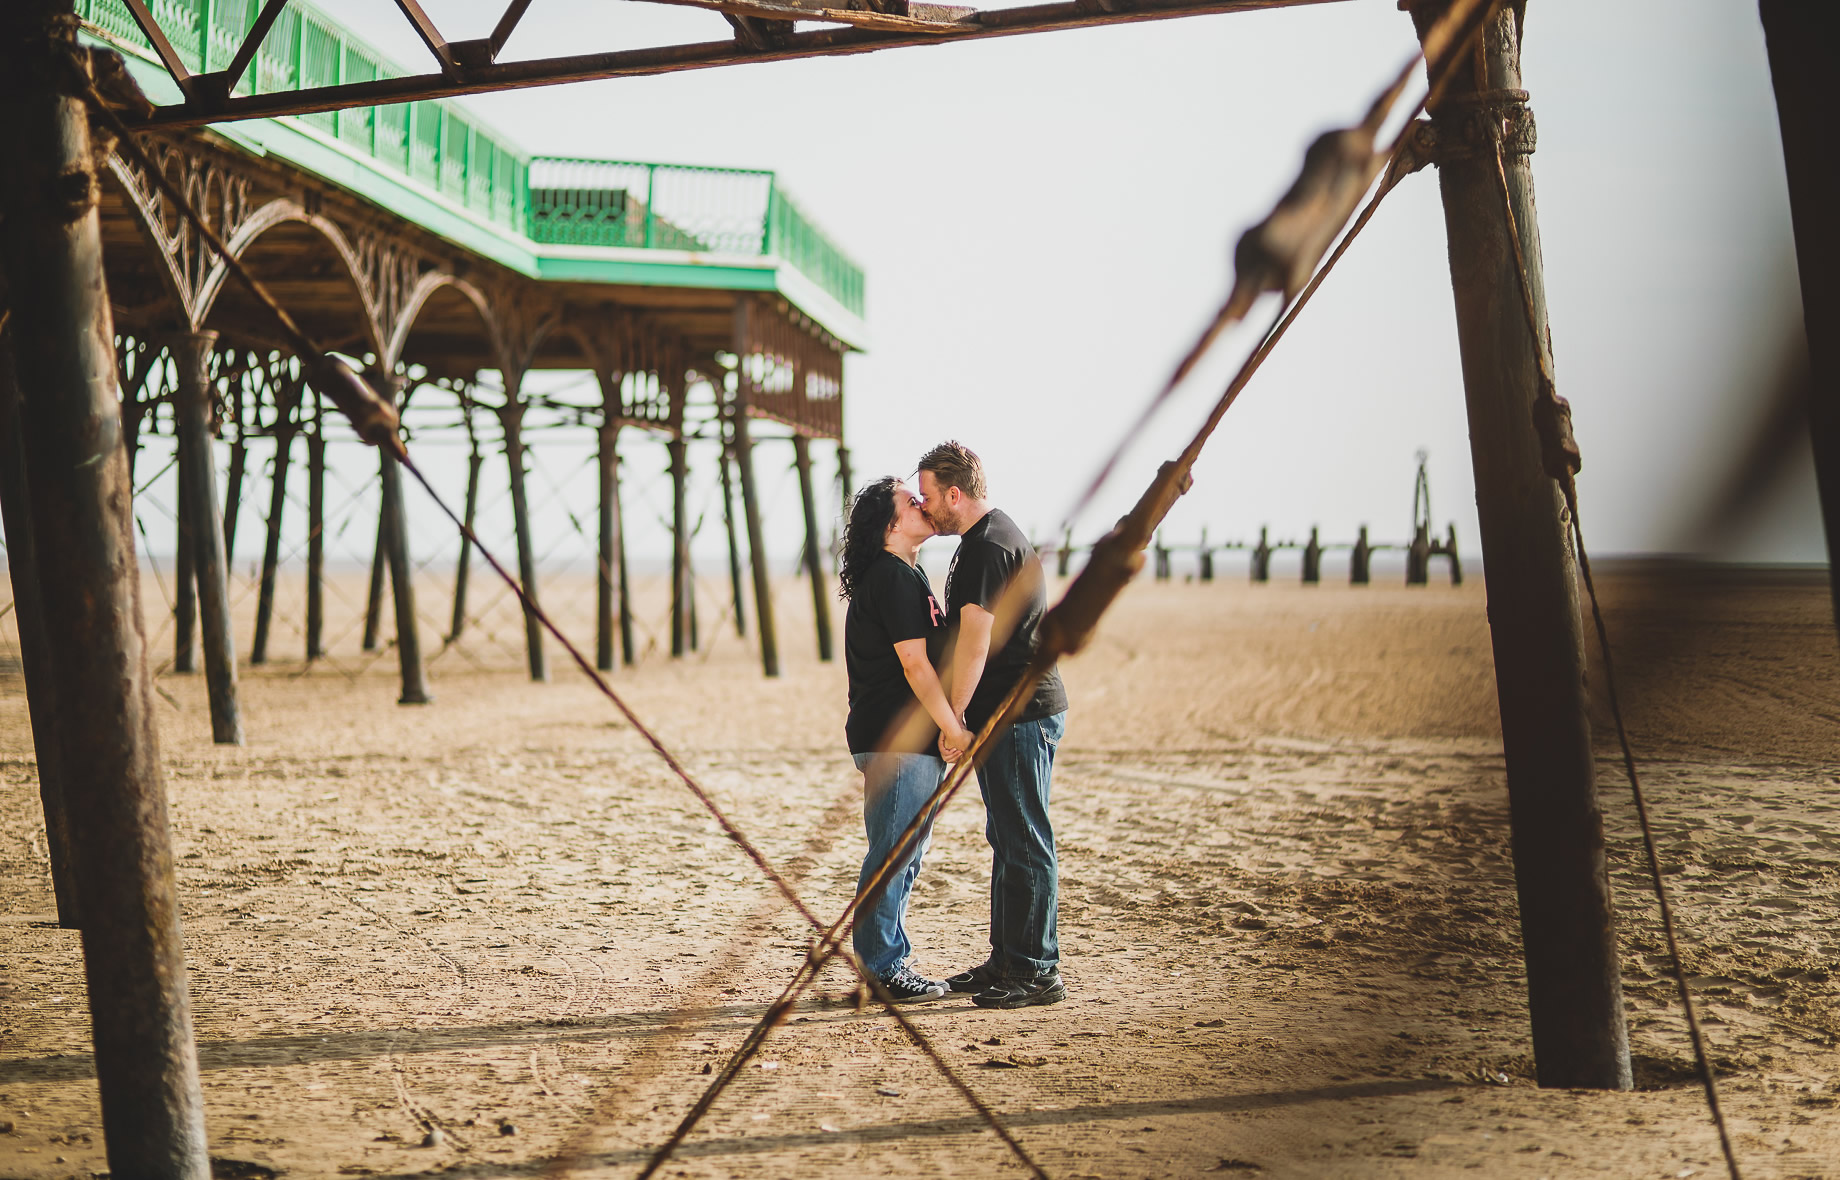 Becky and John's Pre-Wedding Shoot on Lytham St Annes Beach 004